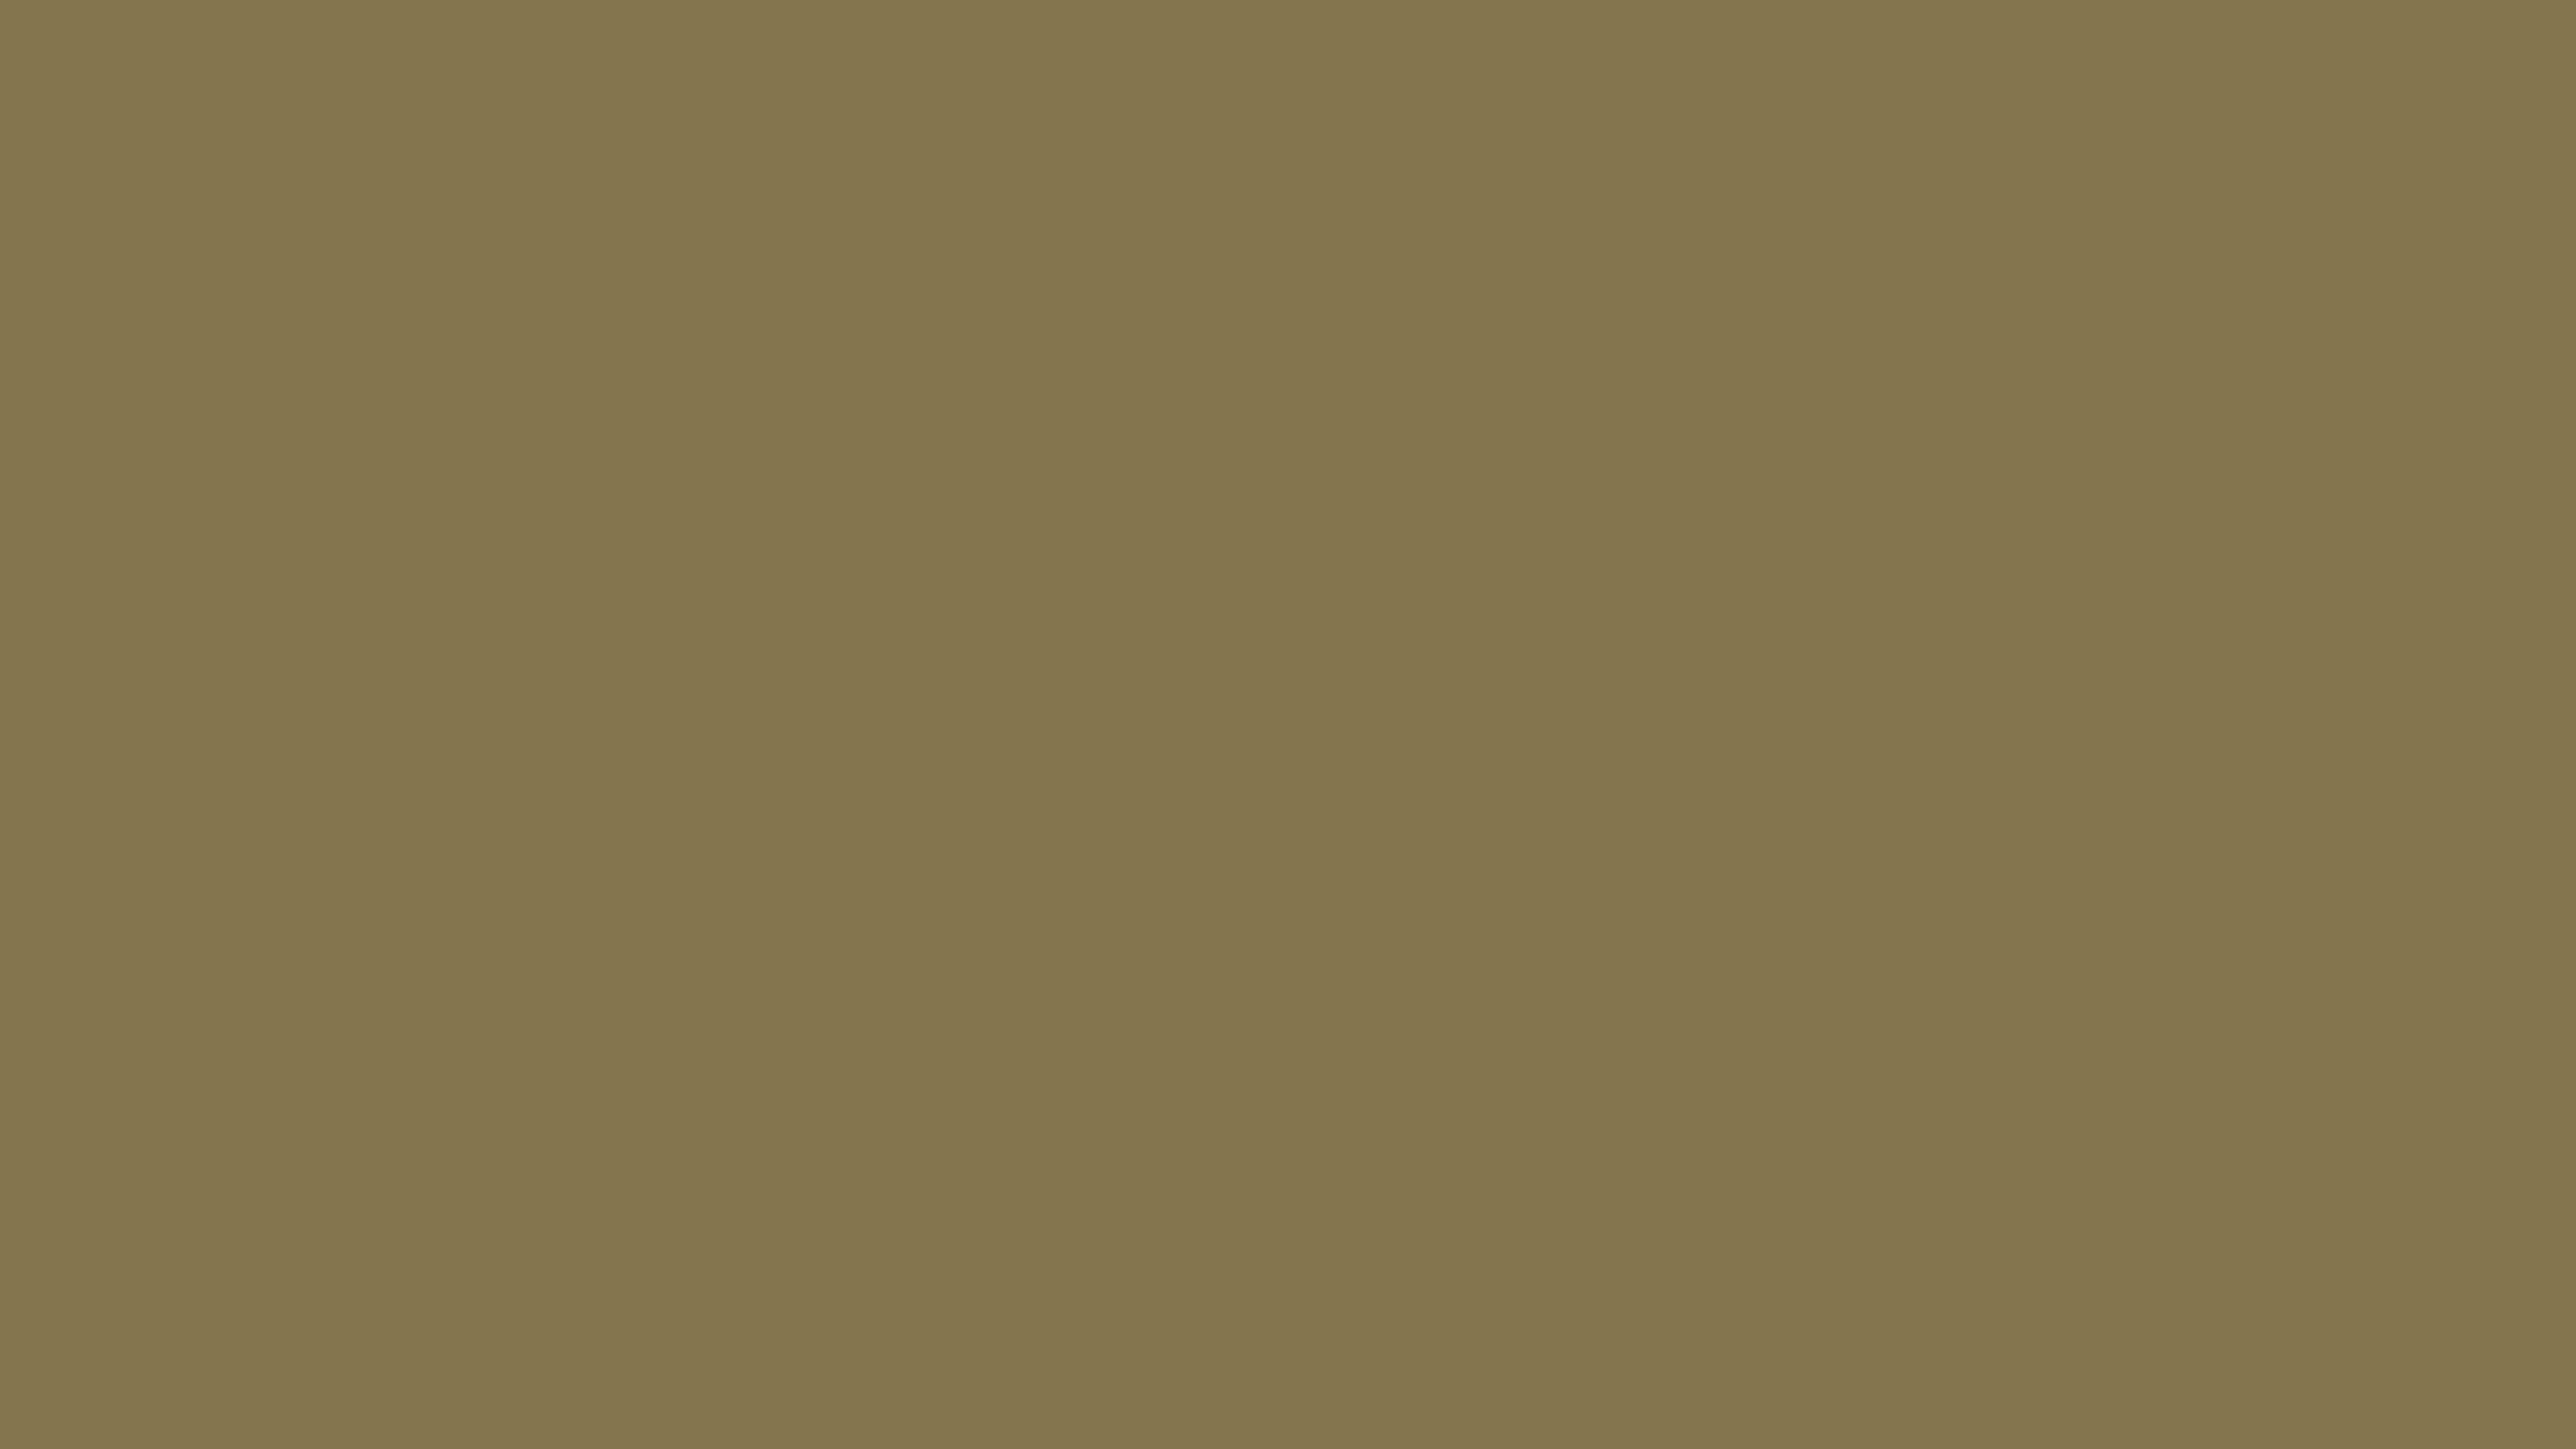 5120x2880 Gold Fusion Solid Color Background